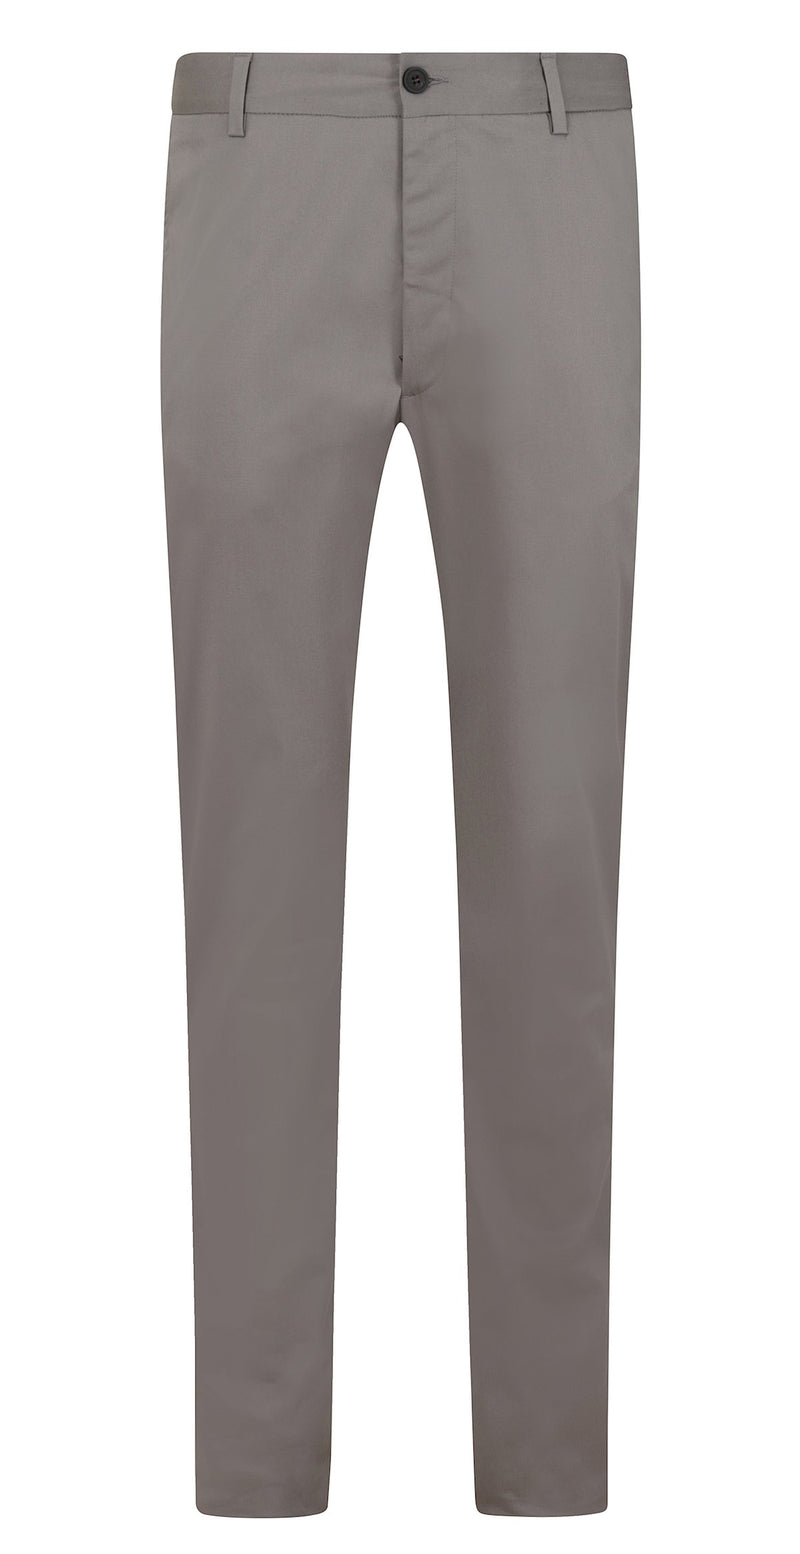 Kilgour Luxury Slim Fit Cotton Blend Chino Charcoal Grey | Malford of London Savile Row and Luxury Formal Wear Sale Outlet